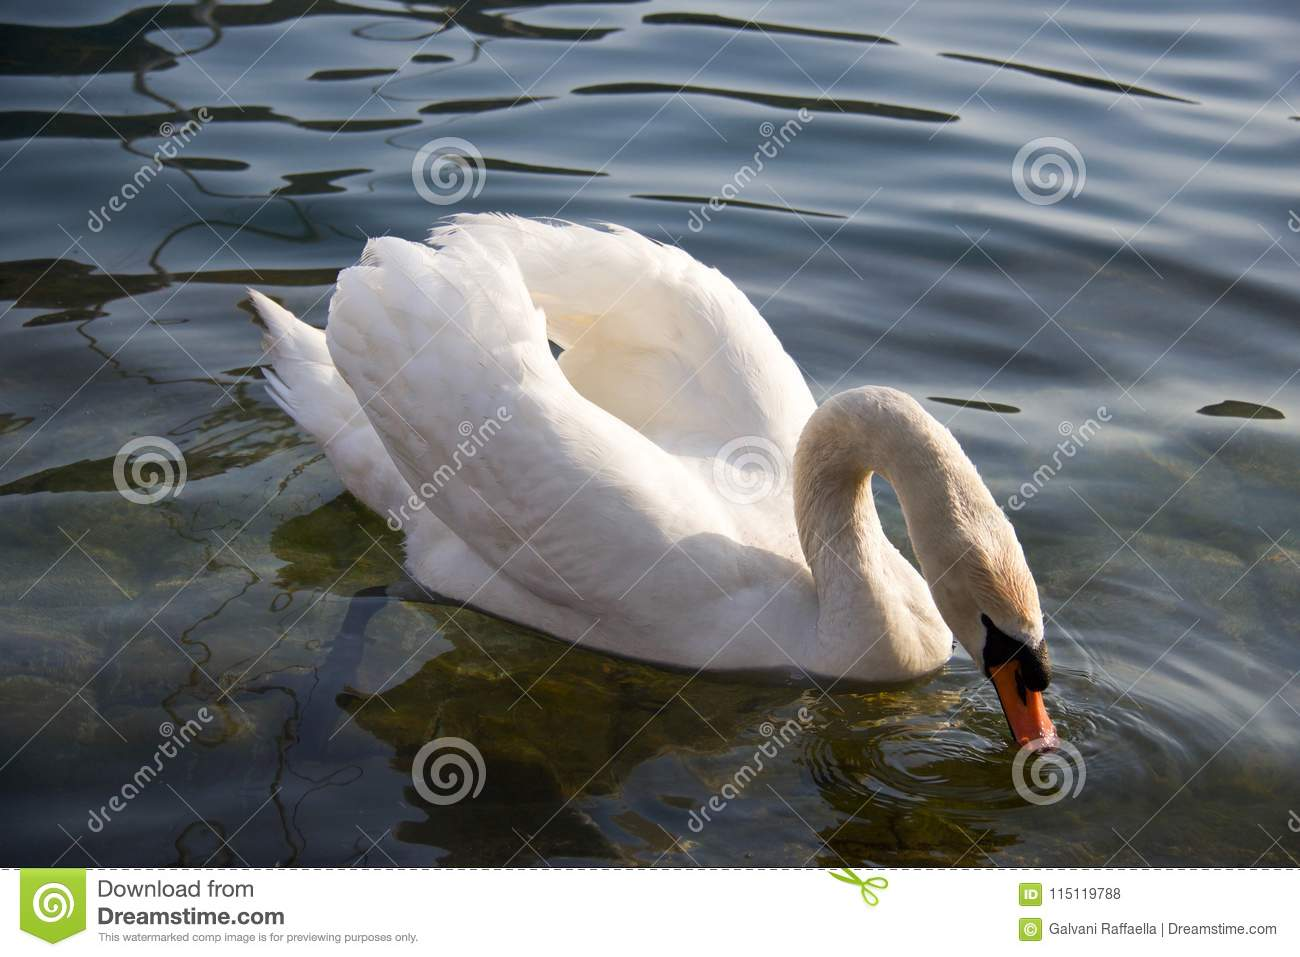 White swan with beack under water eating